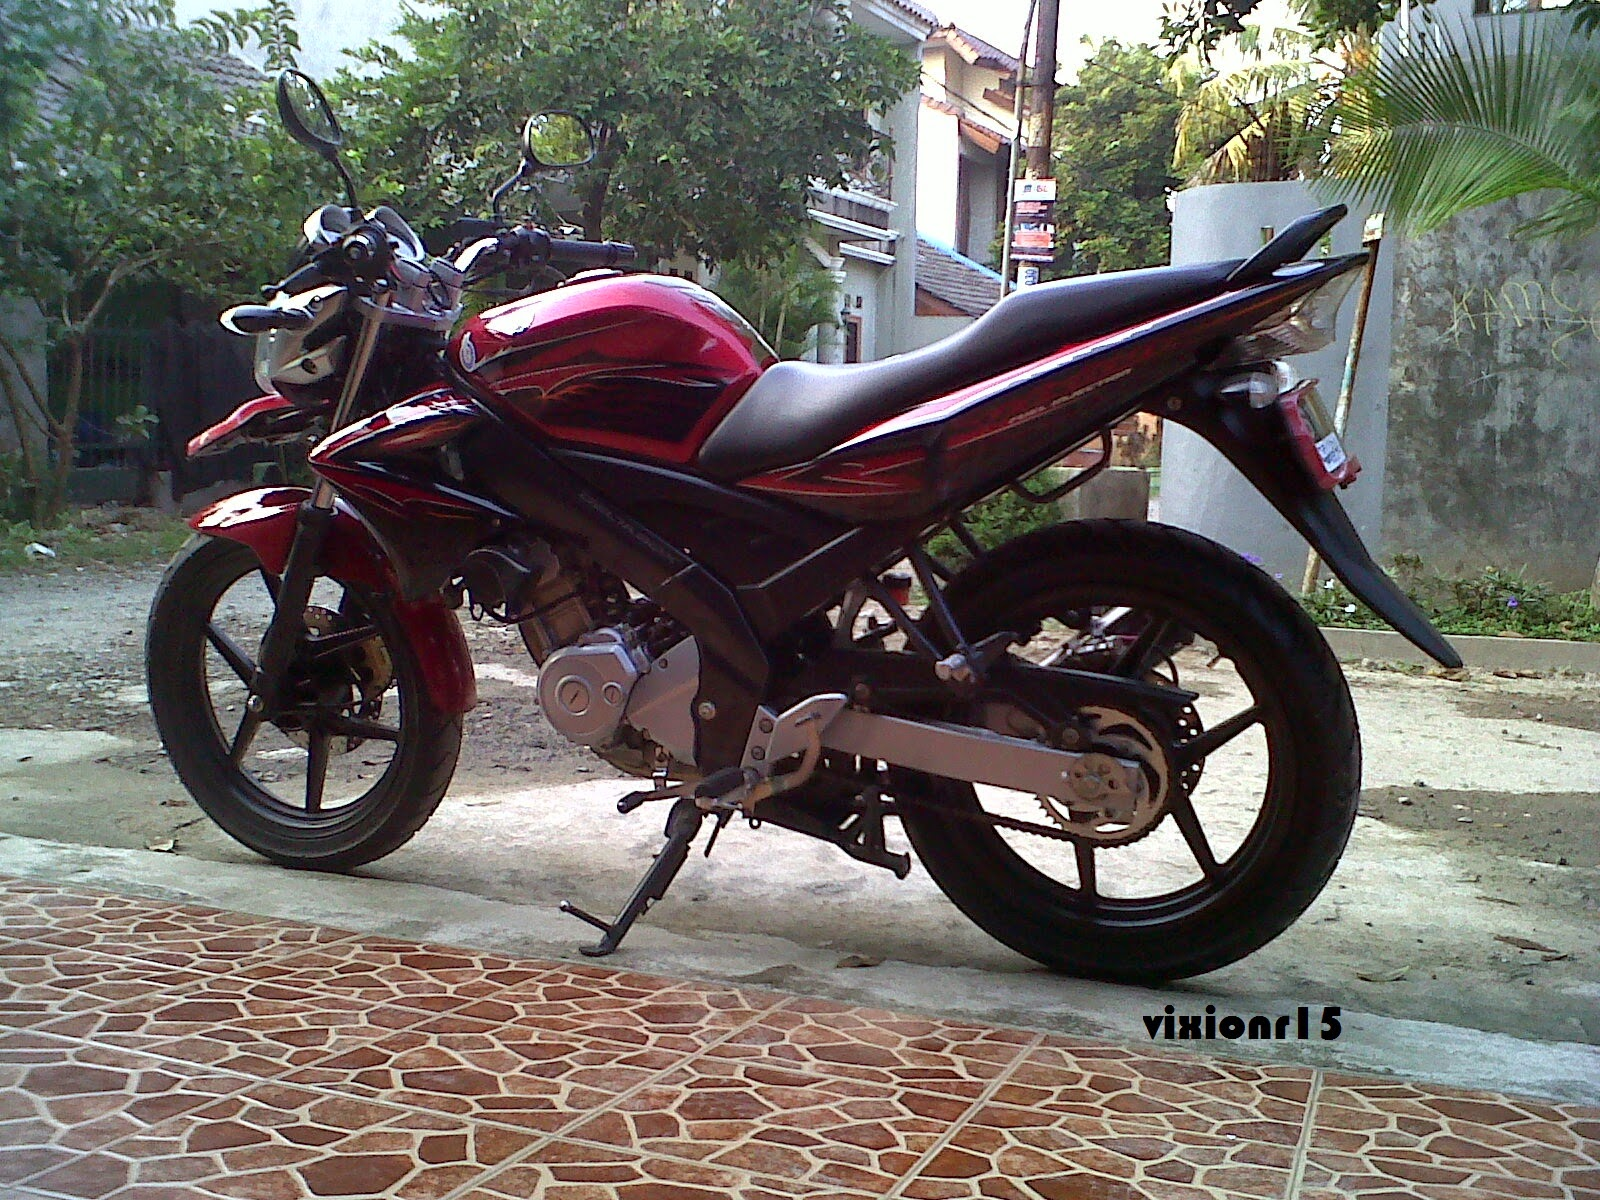 Modifikasi Cb150r Velg Jari